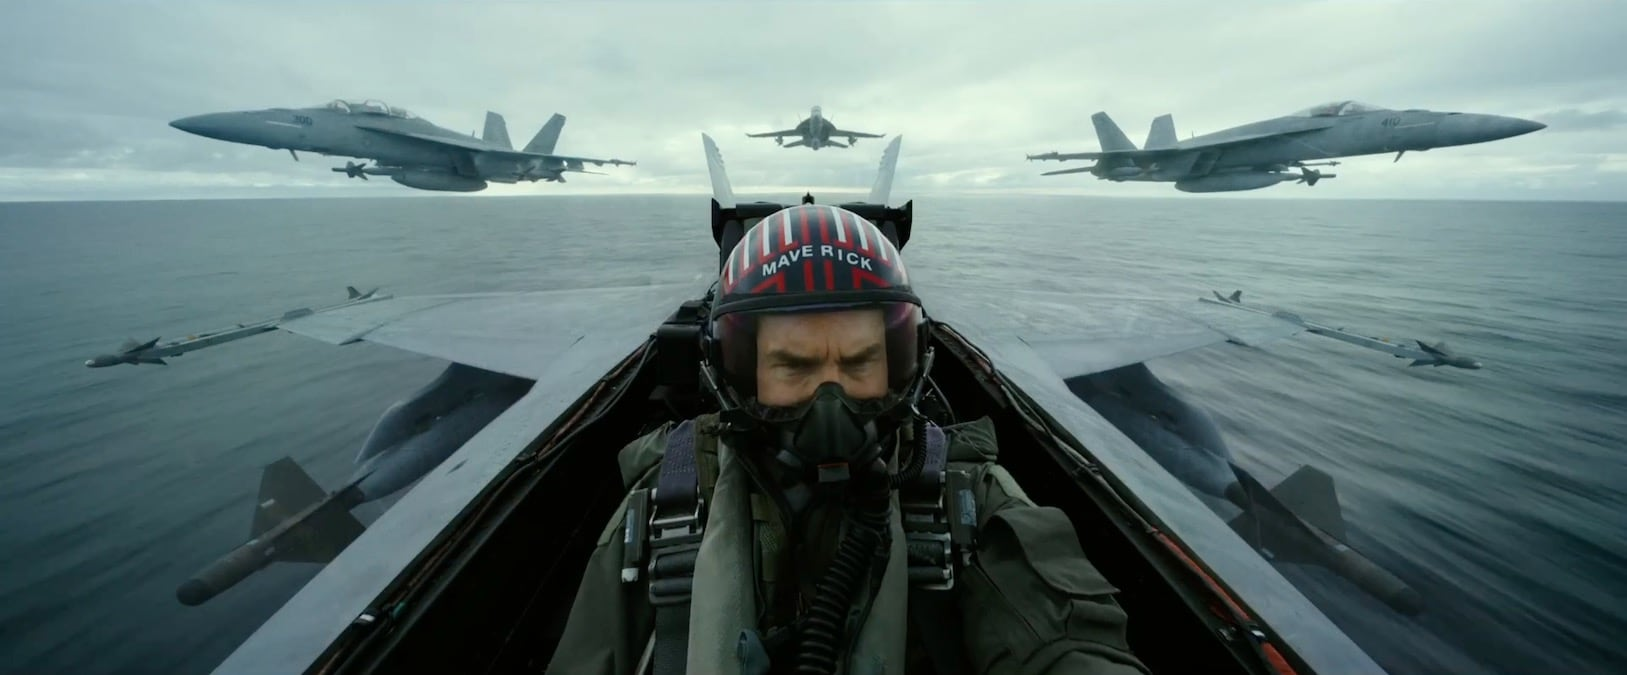 Top Gun Maverick Trailer Wonders Why Tom Cruise S Fighter Pilot Is Stuck In Life San Diego Comic Con 2019 Entertainment News